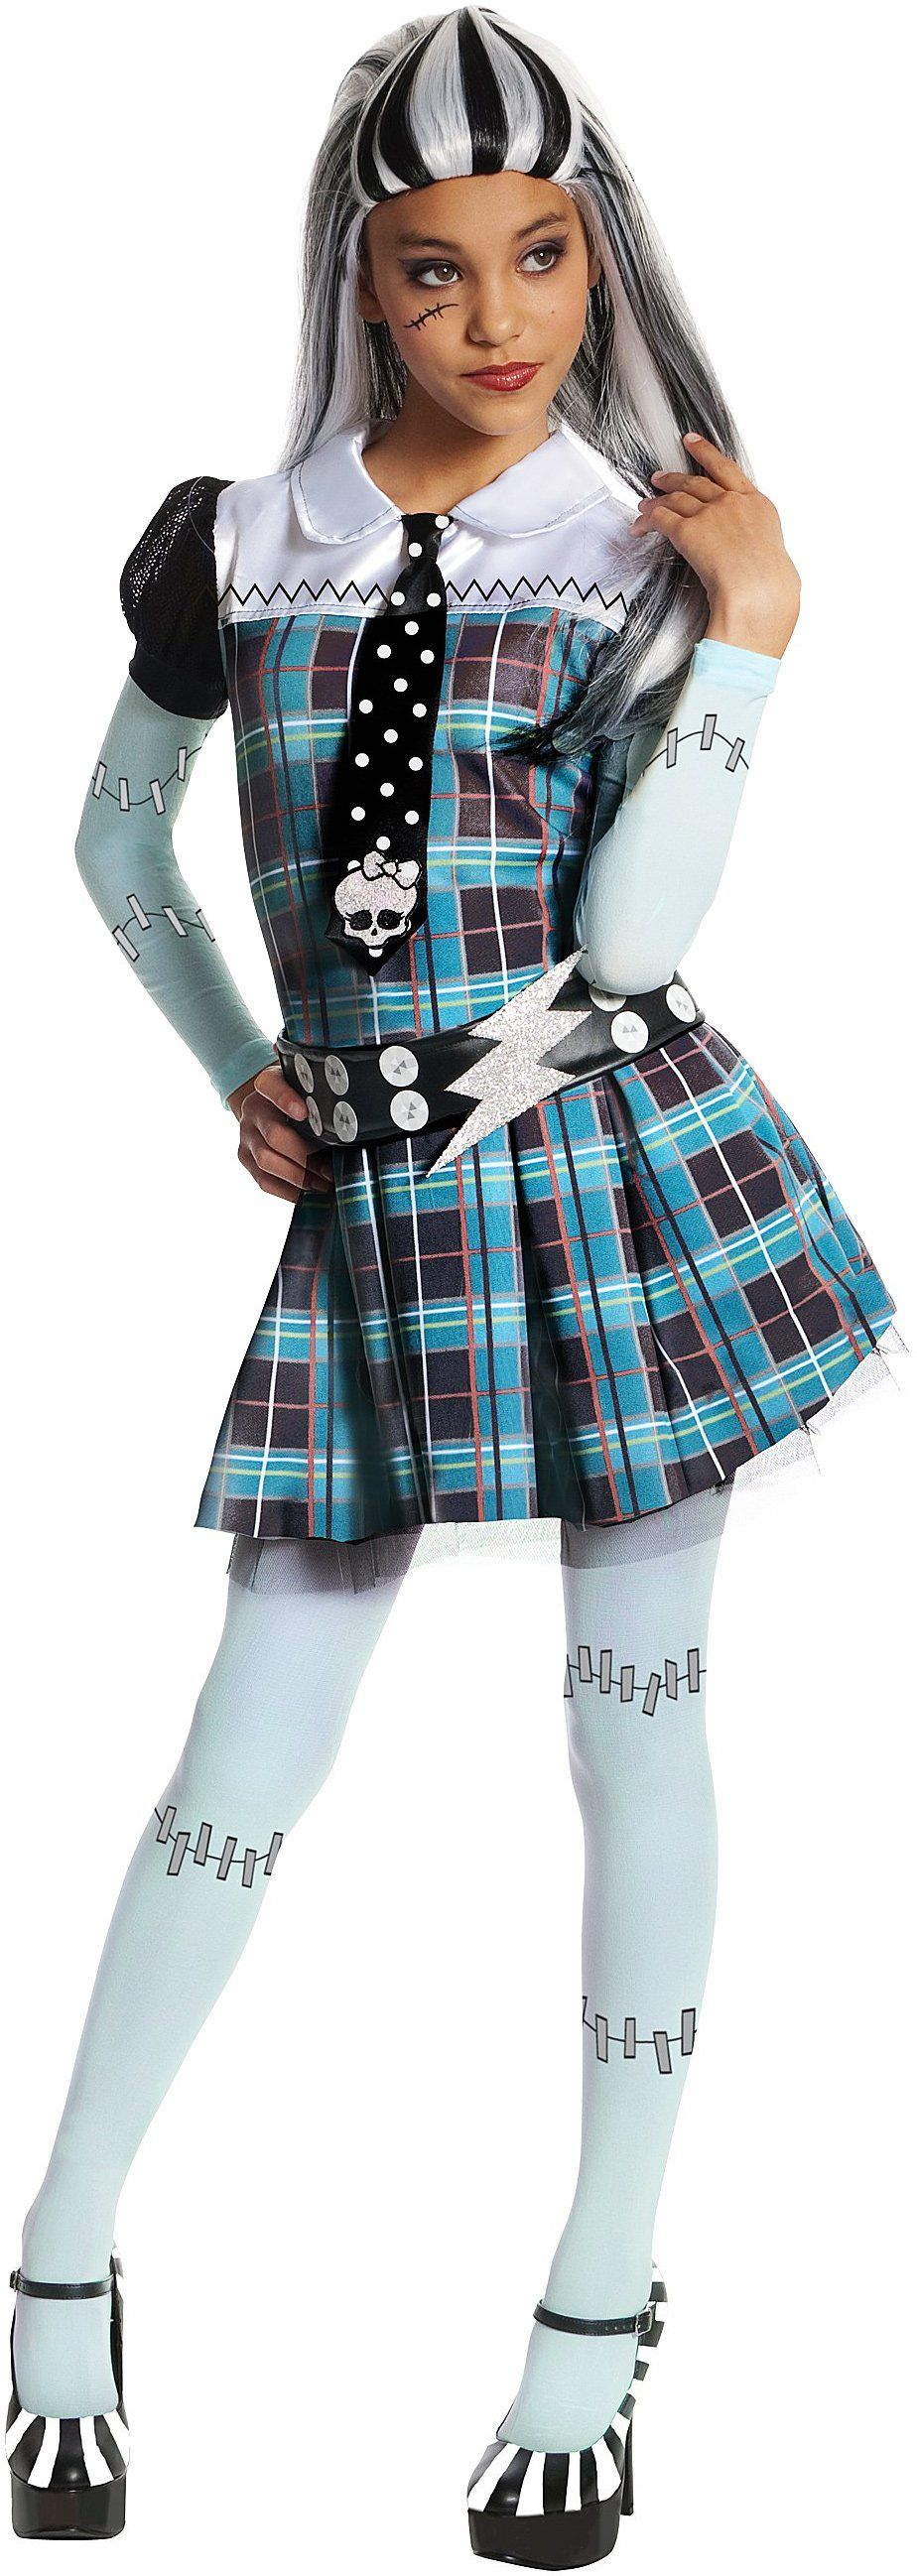 Monster High Frankie Stein Child Costume Be your favorite Monster High character with this dress with attached sleeves and tie belt and leggings!  sc 1 st  Pinterest & Monster High - Frankie Stein Child Costume | Horror masks Scary ...